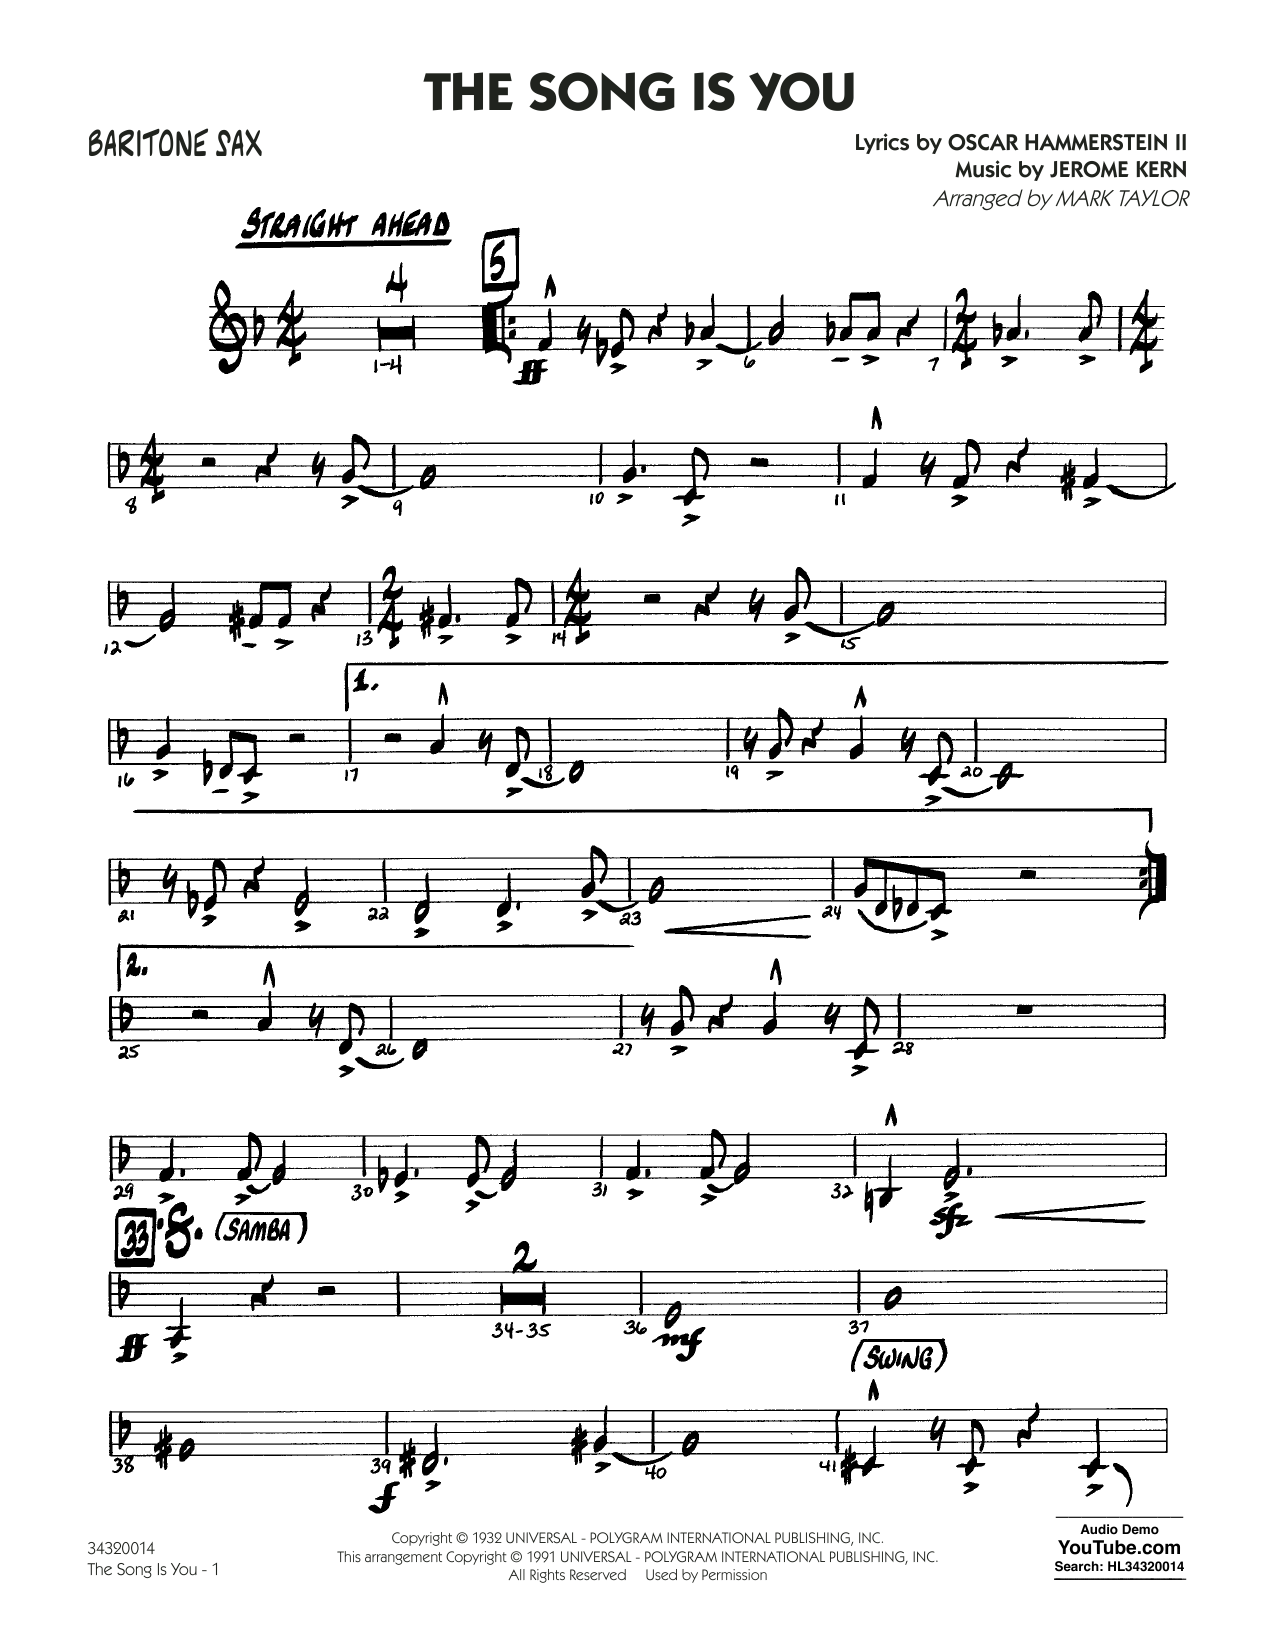 Mark Taylor The Song Is You - Baritone Sax sheet music notes and chords. Download Printable PDF.